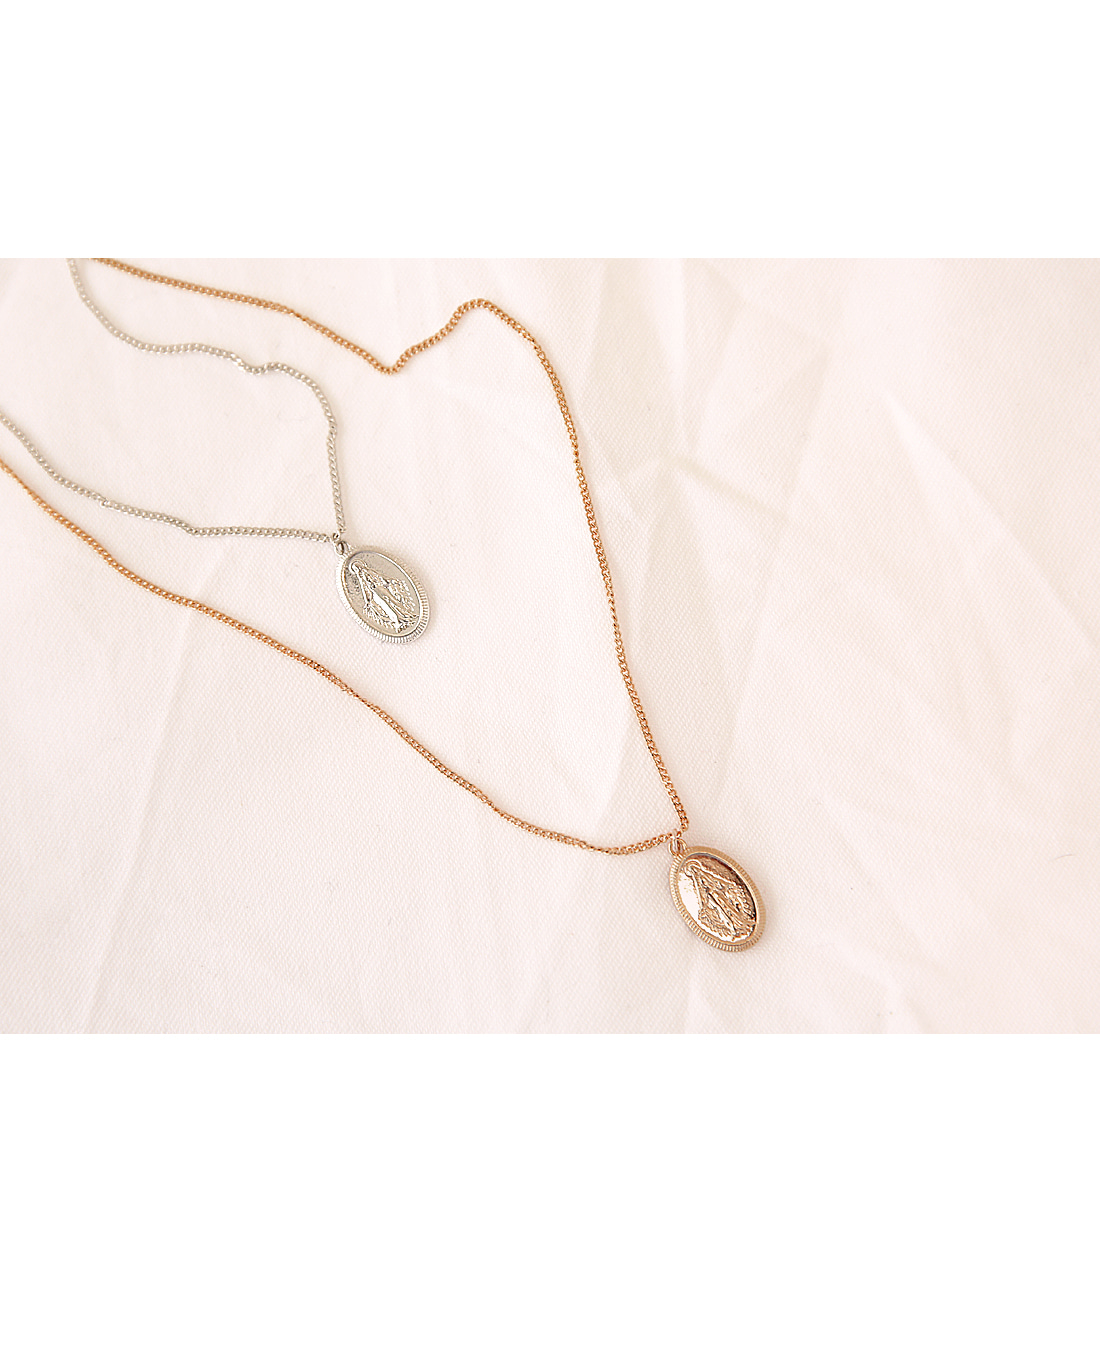 [JEWELRY] MARIA LONG NECKLACE